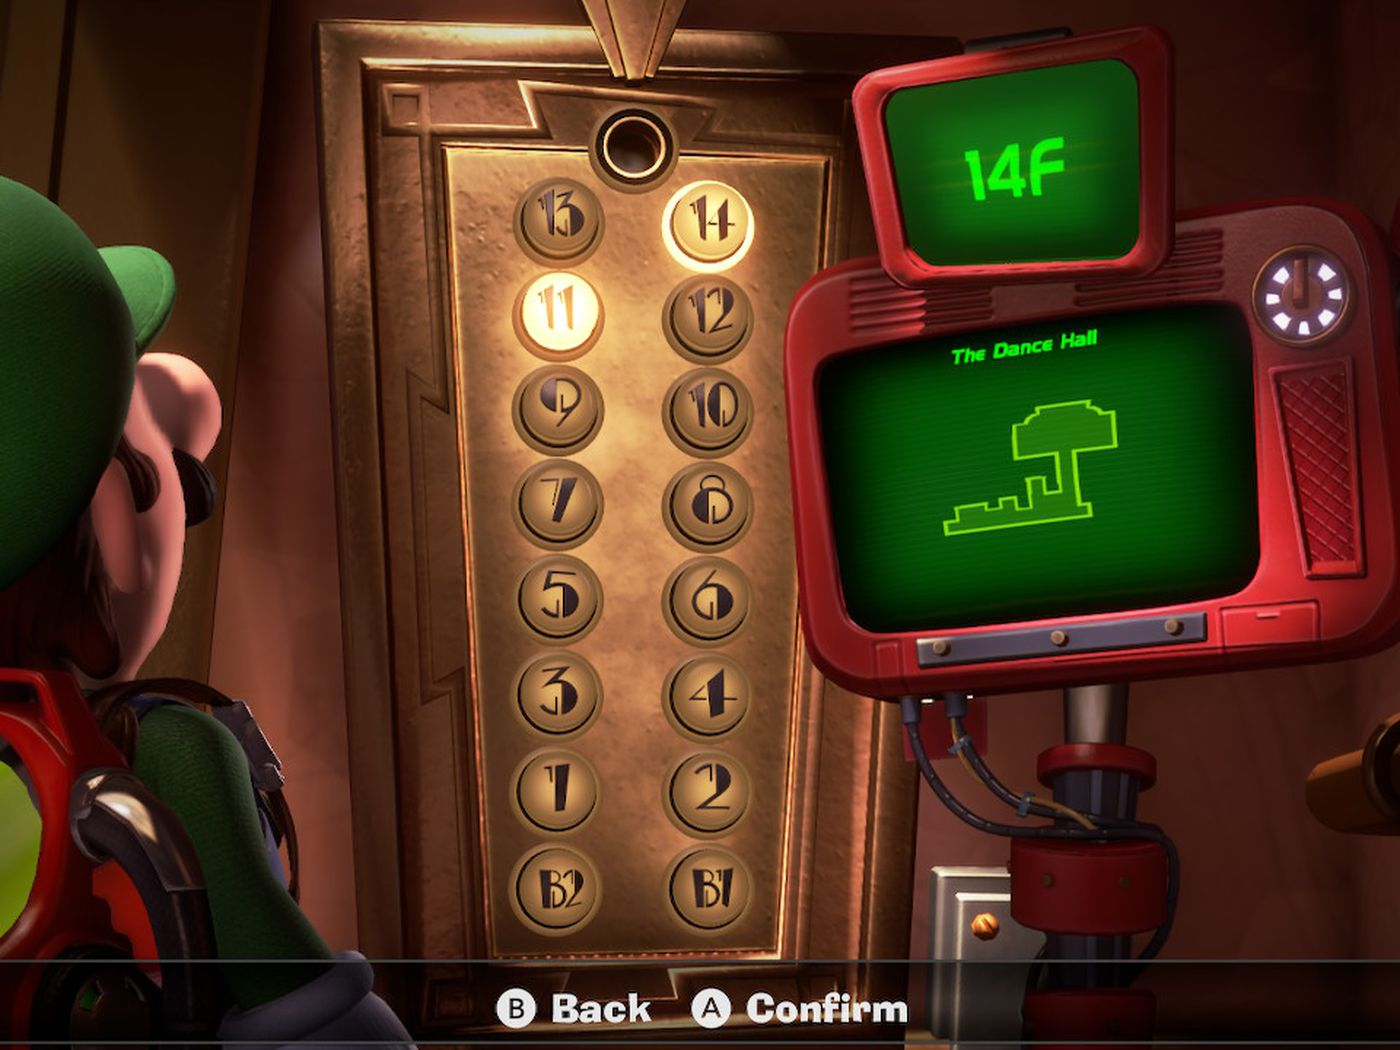 Luigi S Mansion 3 14f Gems Locations Guide Polygon